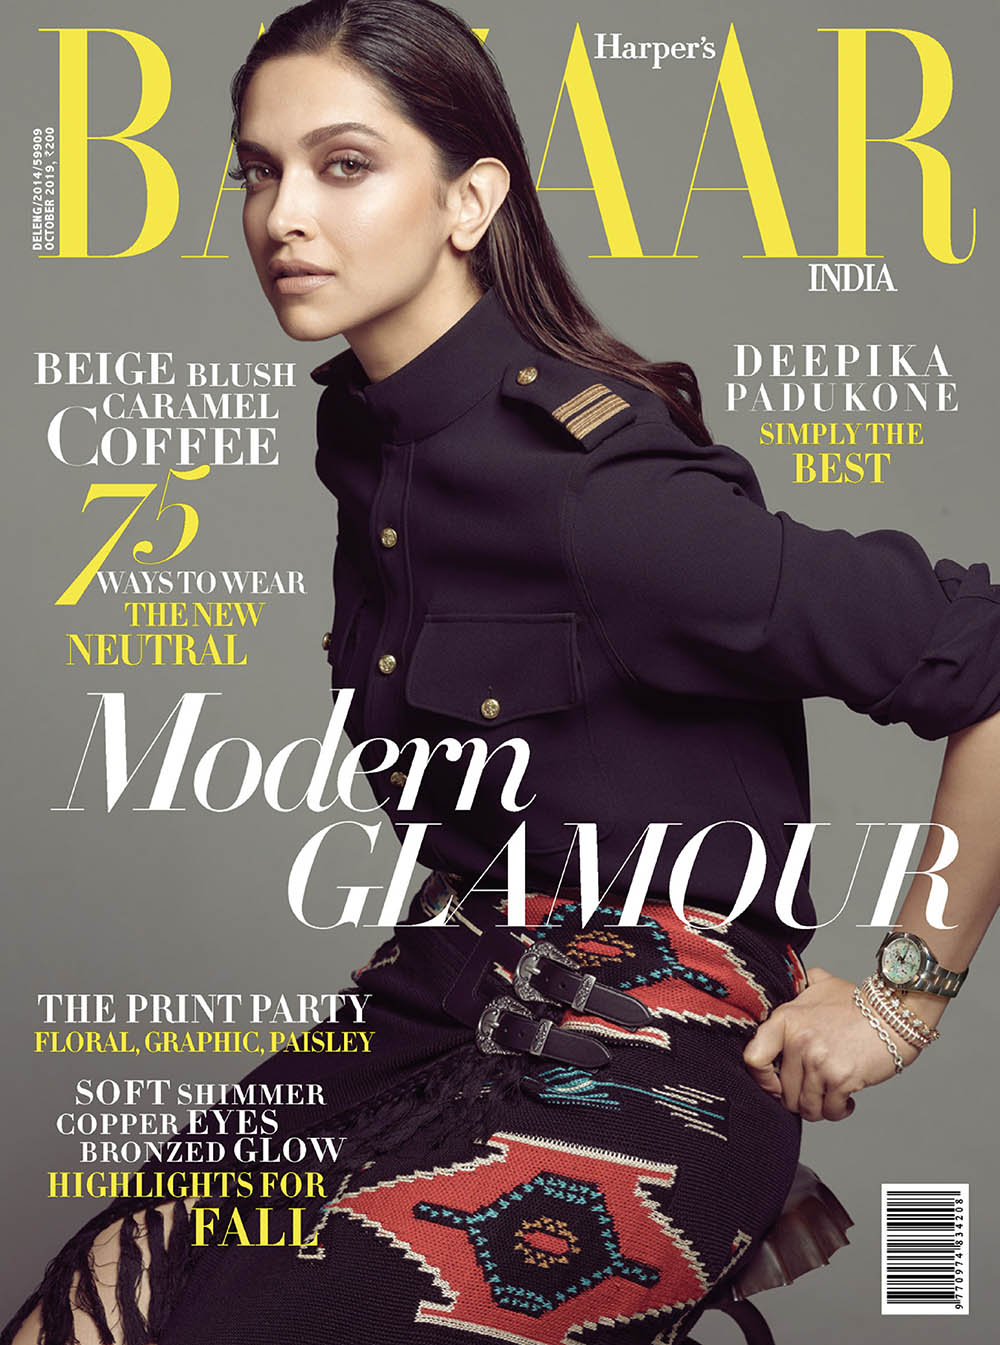 Deepika Padukone covers Harper's Bazaar India October 2019 by Tarun Vishwa